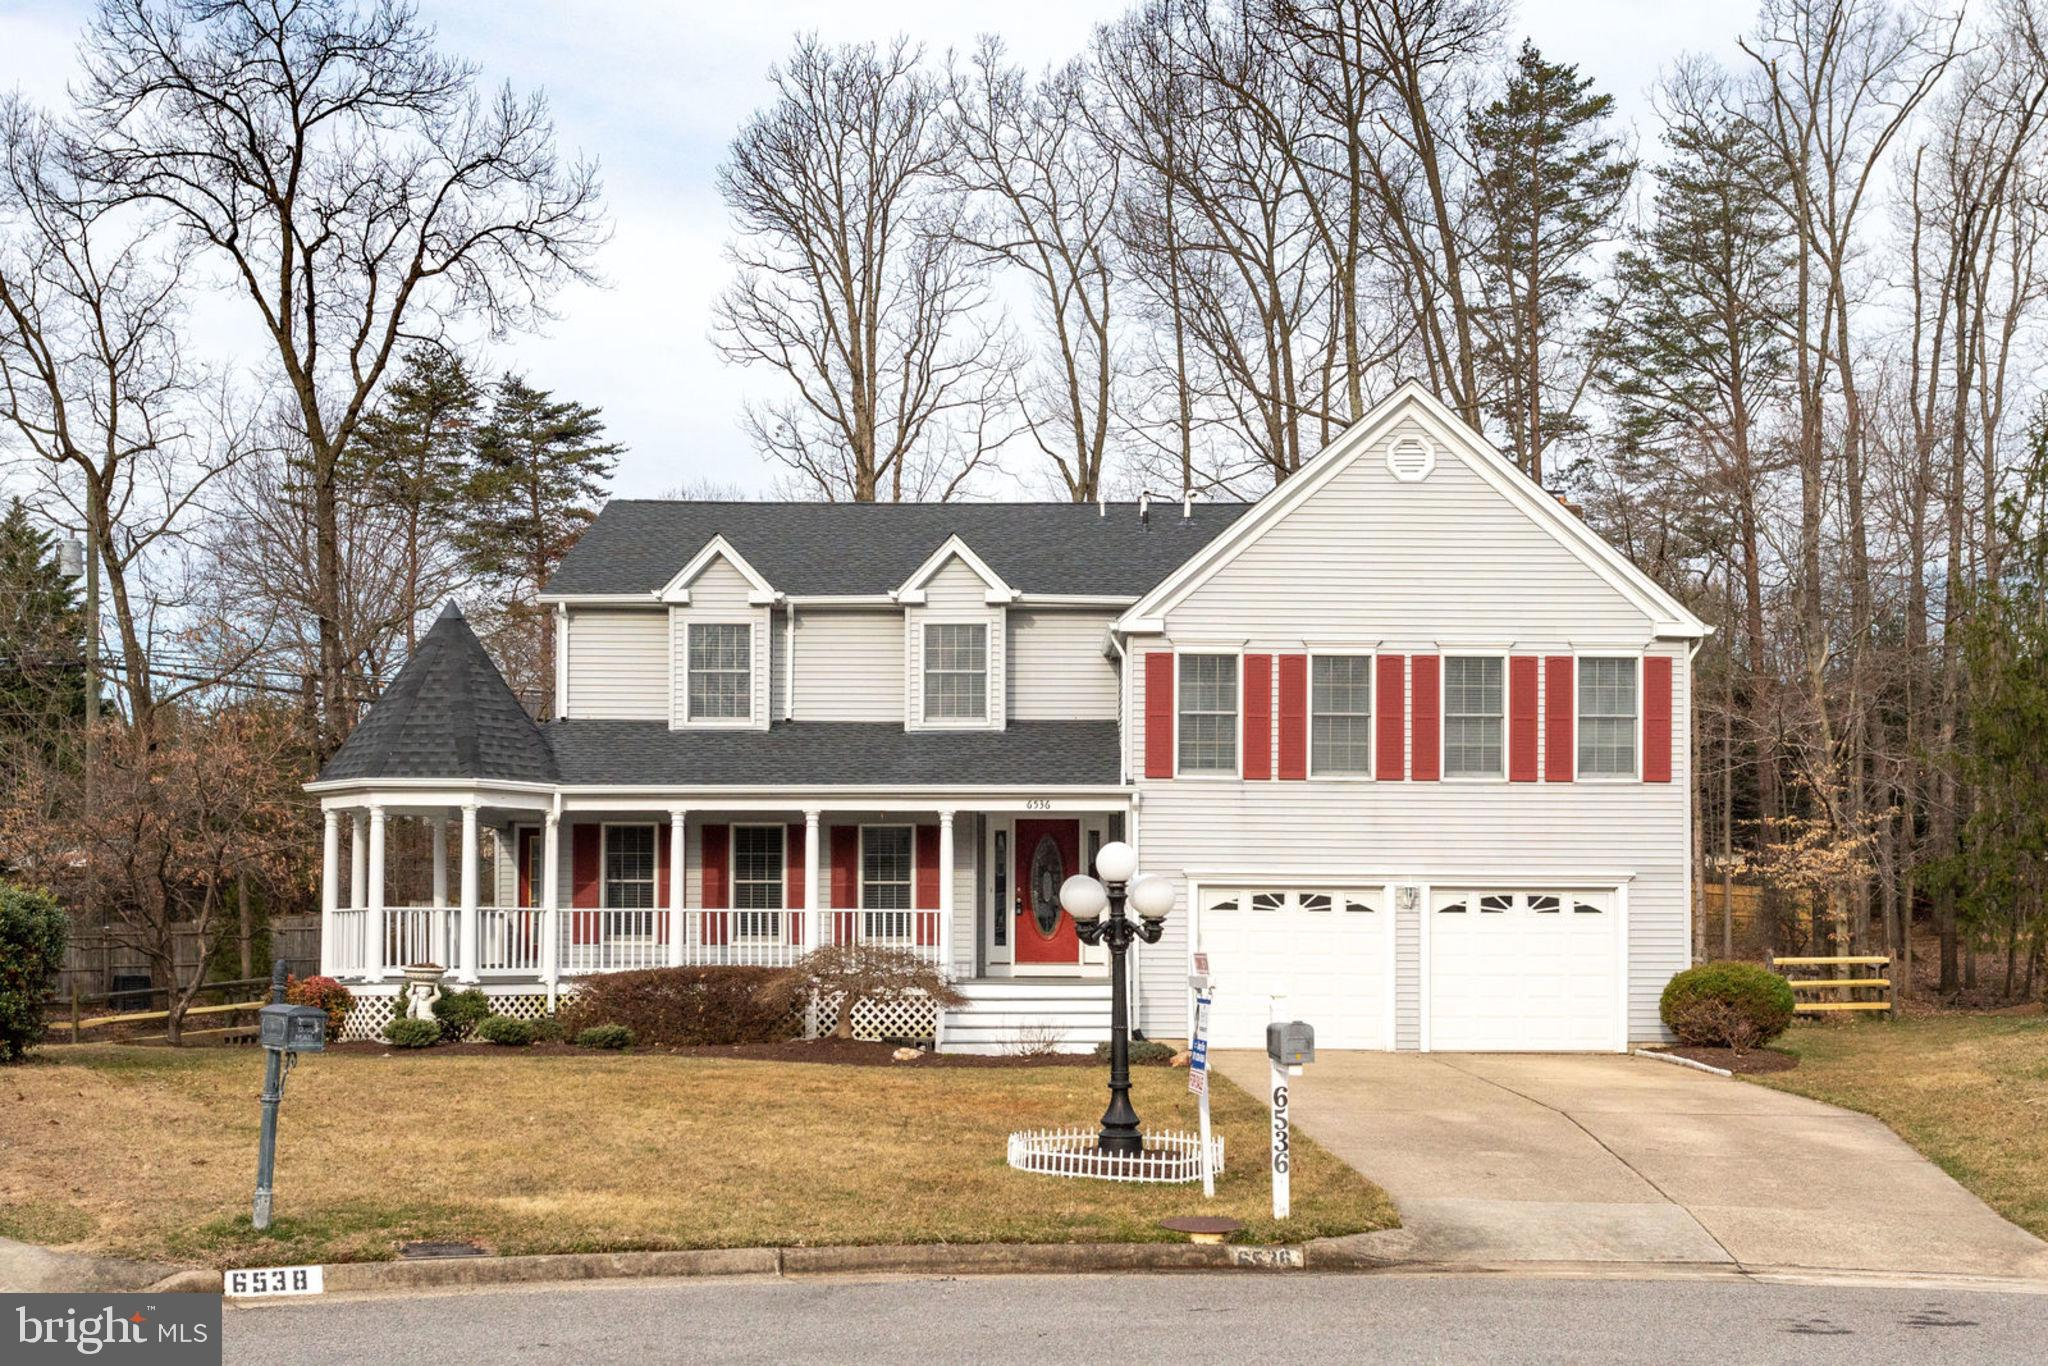 "Original owner well maintained/Renovated Home. Excellent location close to VRE, parks, library, dining, shopping & more! Highly rated Lake Braddock school pyramid. Gleaming hardwood floors on Main Level. Kitchen w/Unique Red Brick Gourmet features with Rage Food, 42"" Cherry Cabinets, Stainless appliances, granite counter tops, breakfast area & more. Family room w/wood fireplace & exit to Back yard deck. Big size dining room exit to the French deck in Front Side. Finished Lower level with Den, Upper-level home to large MBR w/vaulted ceiling, 1 Sitting room, 1 Library. Large ClosetCommunity Amenities 6536 NOVAK WOODS CT BURKE, VA 22015 This 3,183 square foot house sits on a 16,489 square foot lot and features 5 bedrooms and 2.5 bathrooms. This property was built in 1986. , Nearby schools include Nativity Catholic School, White Oaks Elementary School, and Lake Braddock secondary middle school, high school  School. The closest grocery stores are Safeway, Shoppers and Hmart Burke. Nearby coffee shops include McDonald's, Kung Fu Tea and Starbucks. Nearby restaurants include Glory Days Grill, Beijing Tokyo, and Domino's Pizza. 6536 NOVAK WOODS CT BURKE, VA 22015is near Rolling Valley West Park, Burke Ridge Park, and Cherry Run Park. 1. Beautifully Updated Master and Hall bath March  2019,2. Designer Paint Colors Whole House March 20193. New carpets whole hose March 2019,4. New 2"" Wood Faux Blind w/out  String March  2019 ,5. New washer/Dryer March 2019 ,6. New Roof Nov 2018  7. Refrigerator March   2018 8. Induction Cooktop Oct 2018, 9. Dishwasher Dec 2018,10. Backyard Deck  Oct 2016,11. Double wall oven-New kitchen cabinet, floor 2011, 12. Basement wt  Den  2002, 13. HVAC New condensing unit 2010  Heating New Air Handler 1F/2017, 2F/ 2013 ,Hot water tank -2010 14. Sump Pump 1.Sump Pump 2, Stand by Sump Pump ,New Garage 2door 2015"